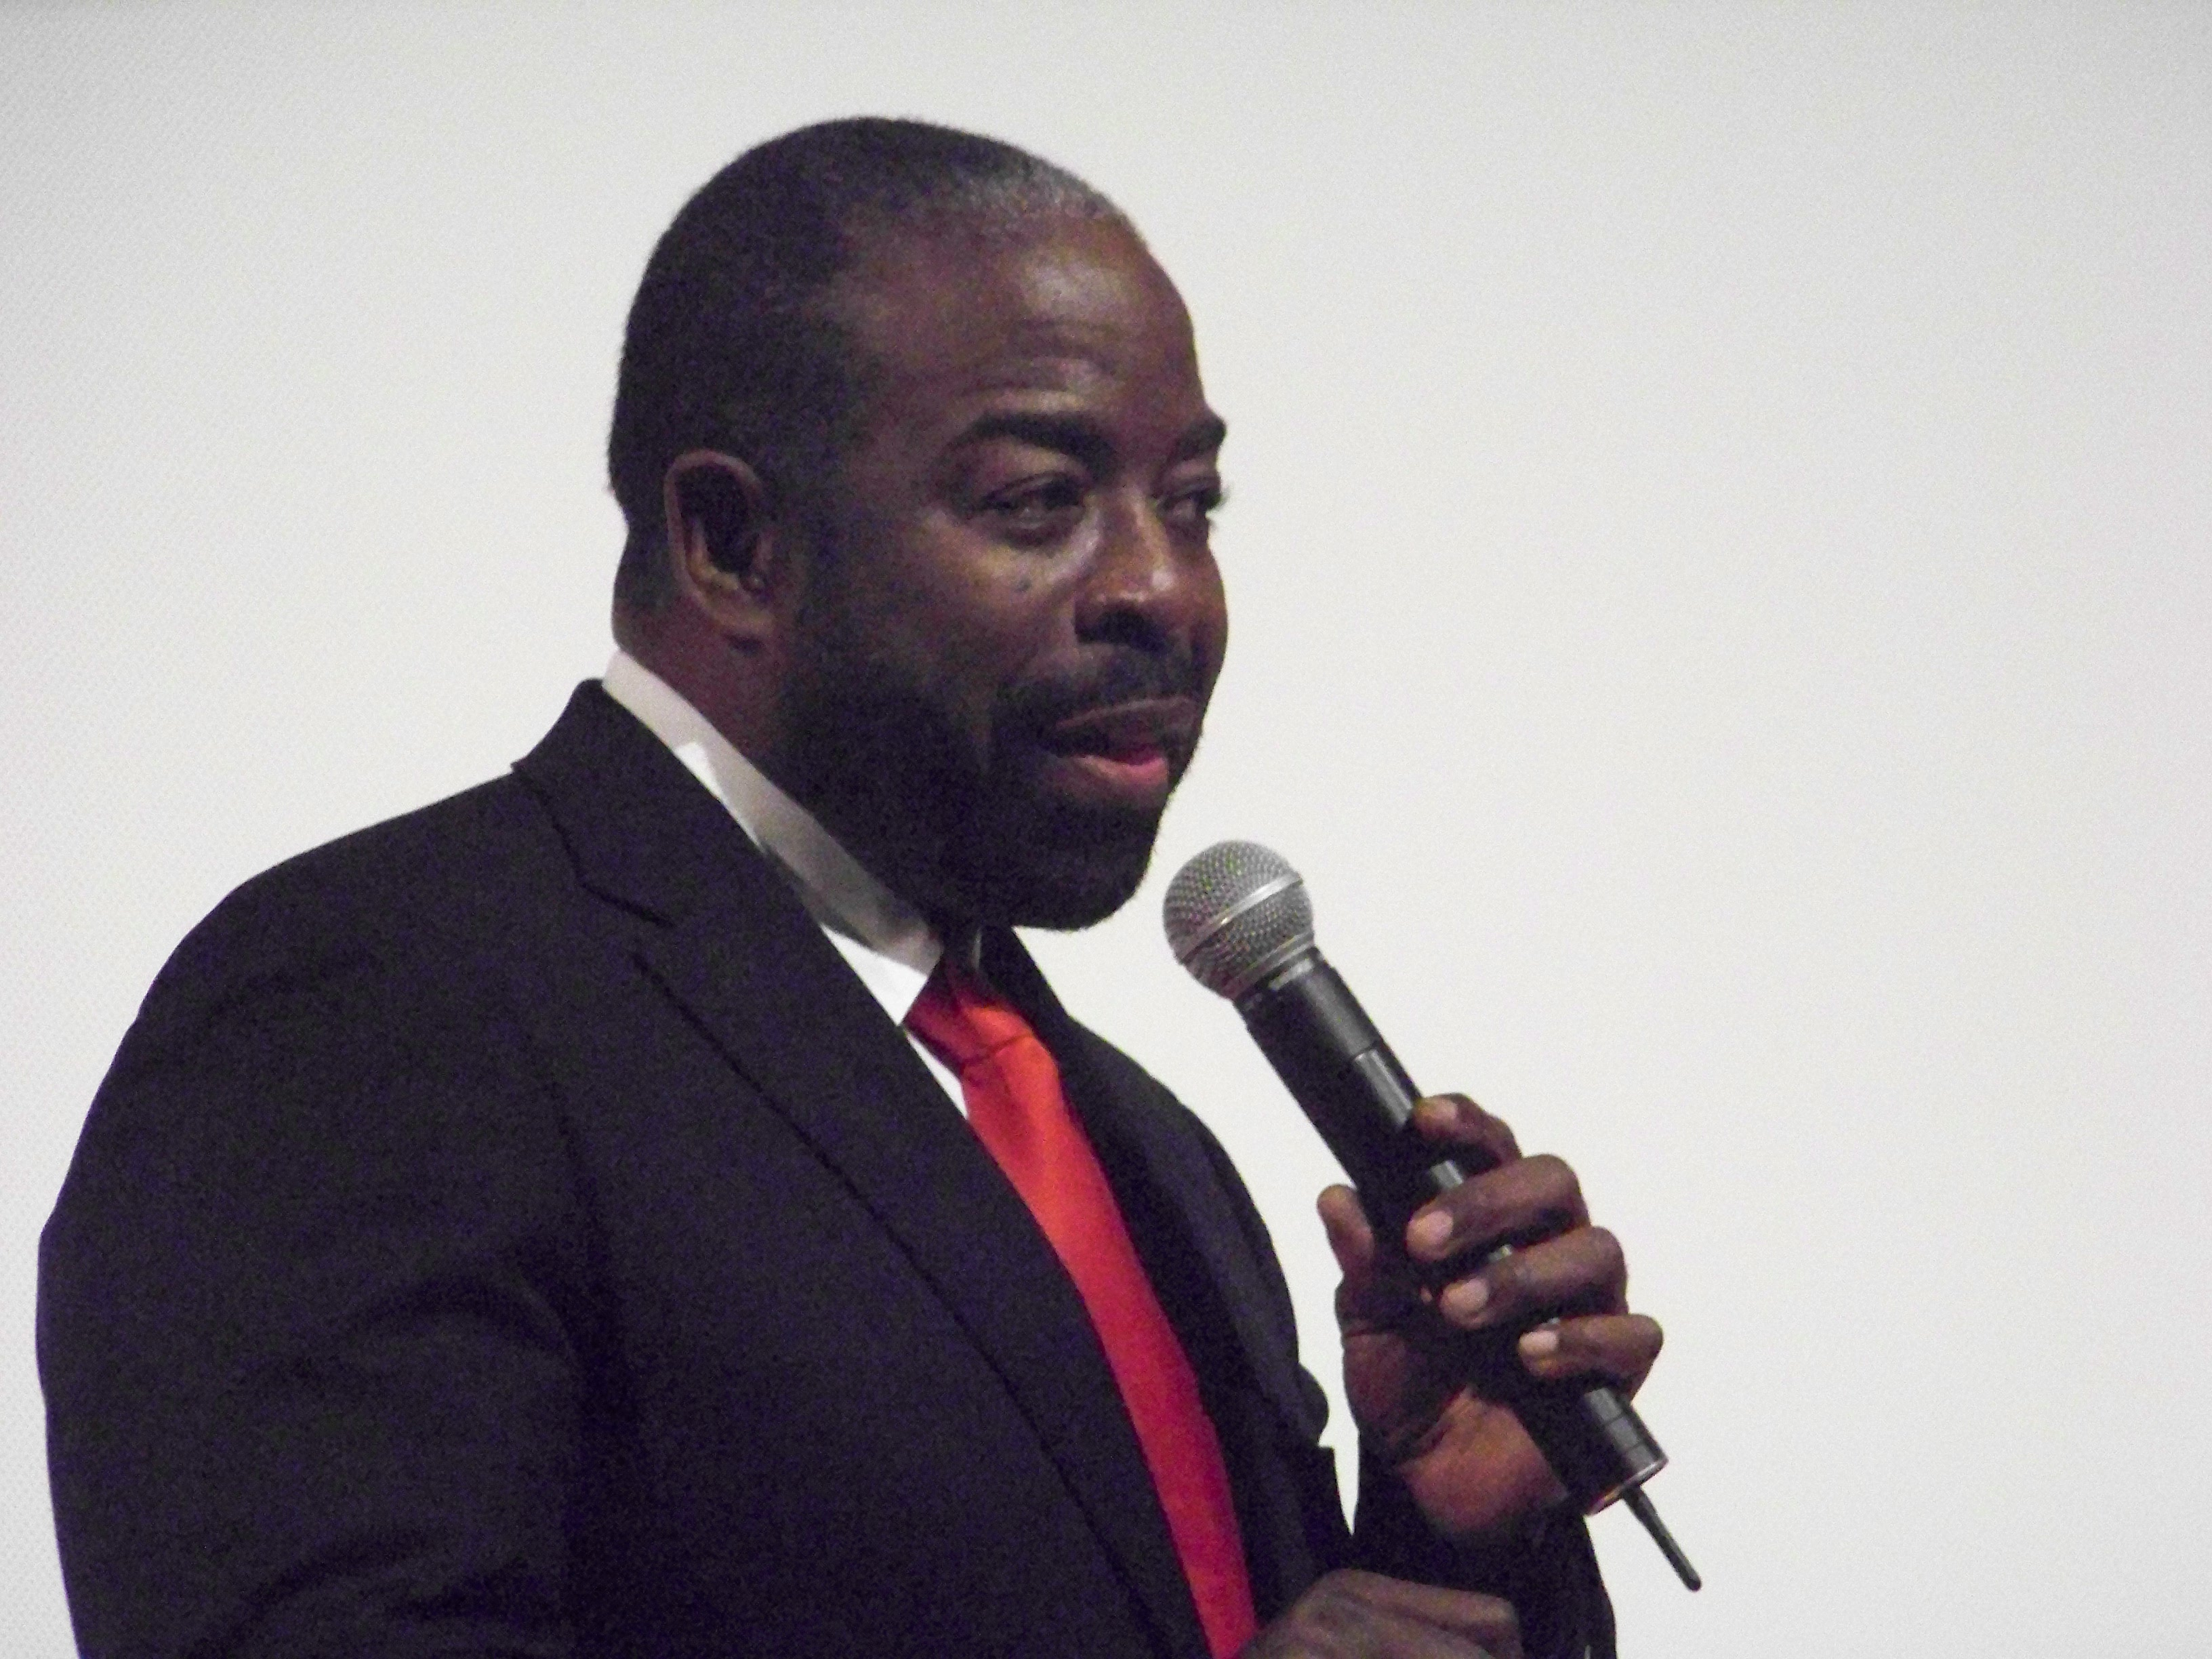 Les Brown Motivator and Educator Win With Fred